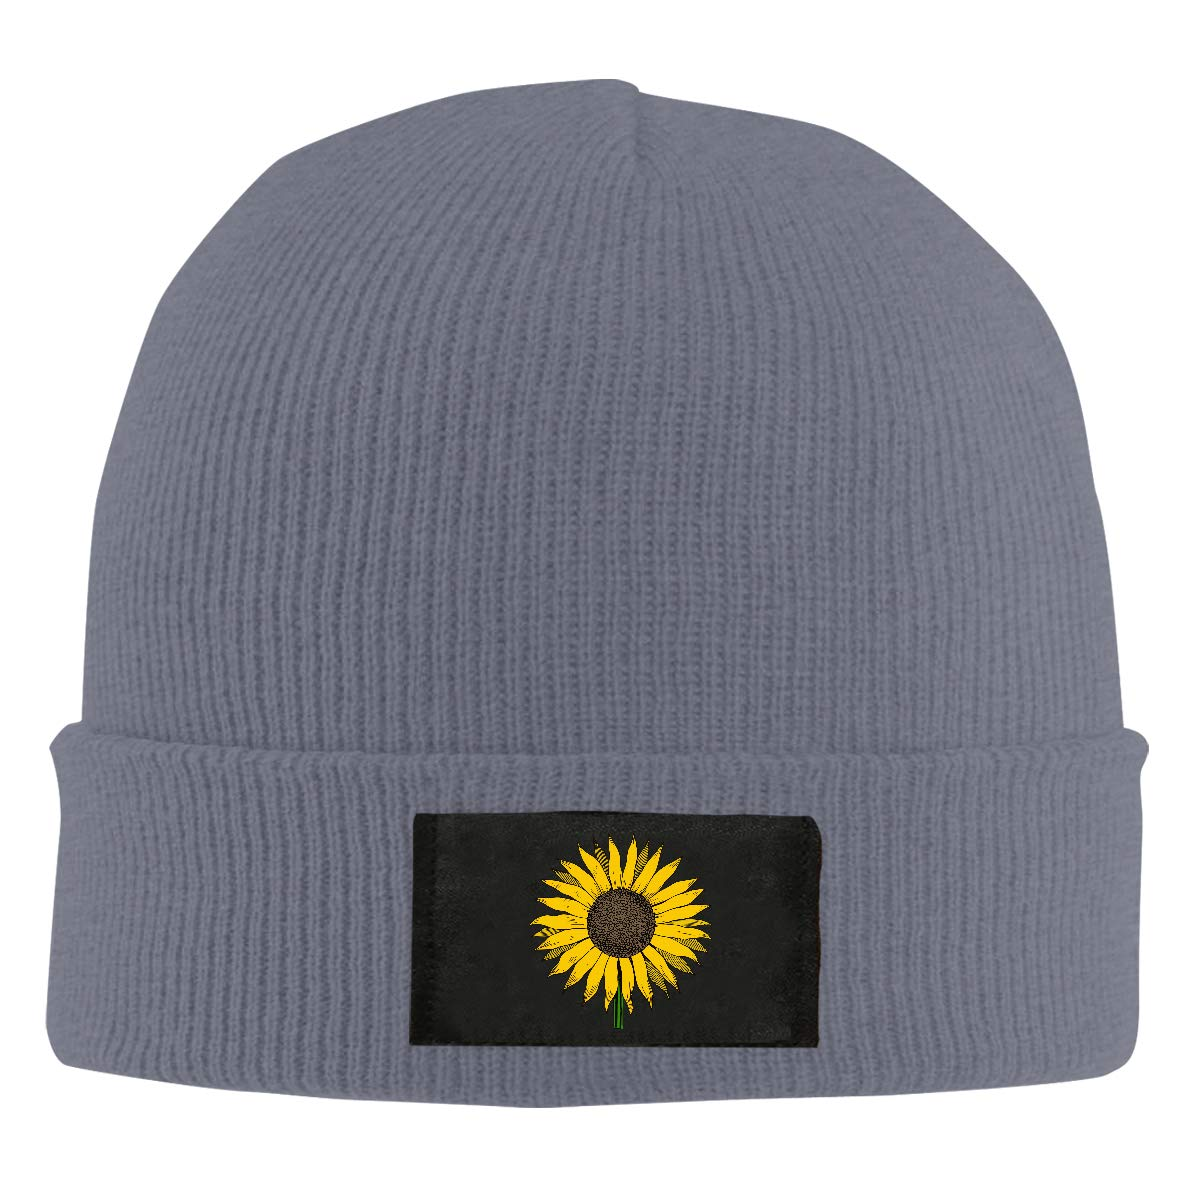 Sunflower Clipart Men /& Womens Knitted Hat Stretchy Beanie Cap